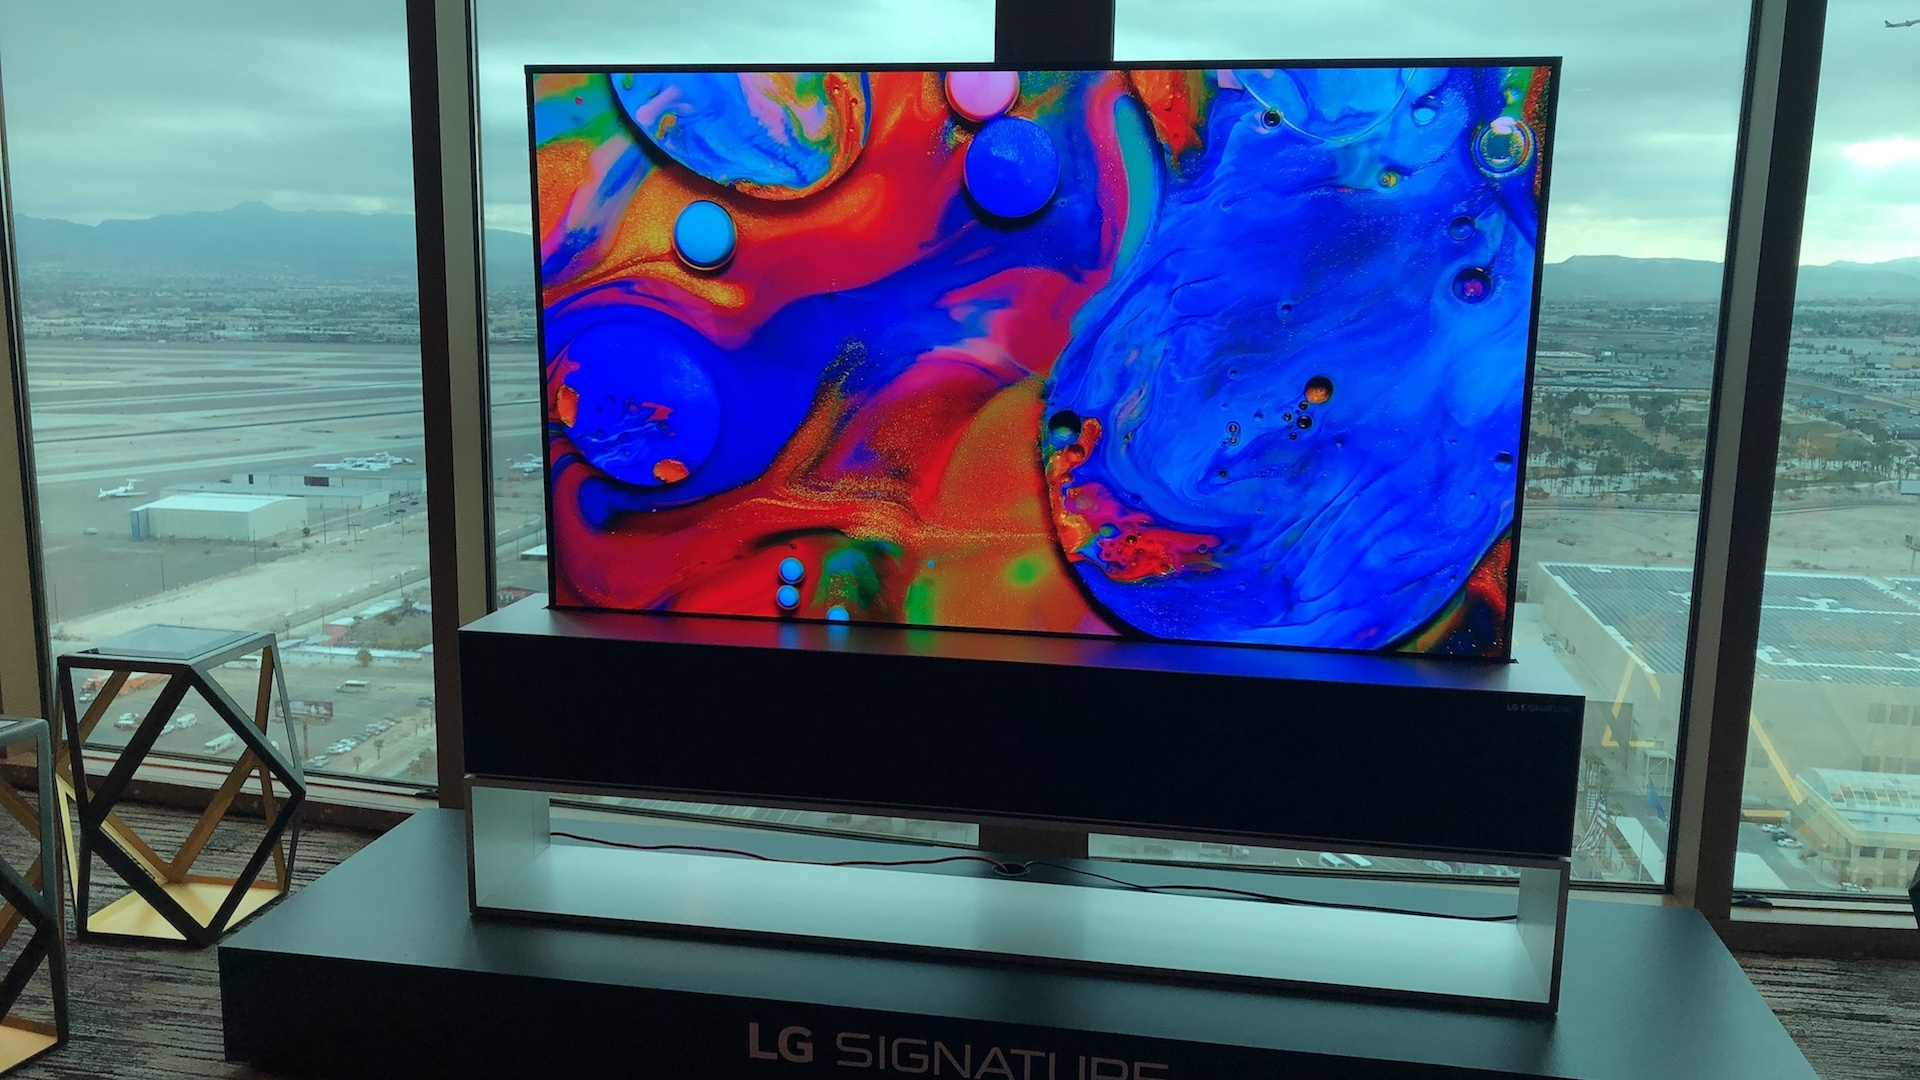 Hands on: LG OLED65R9 rollable OLED TV (2019) hands-on